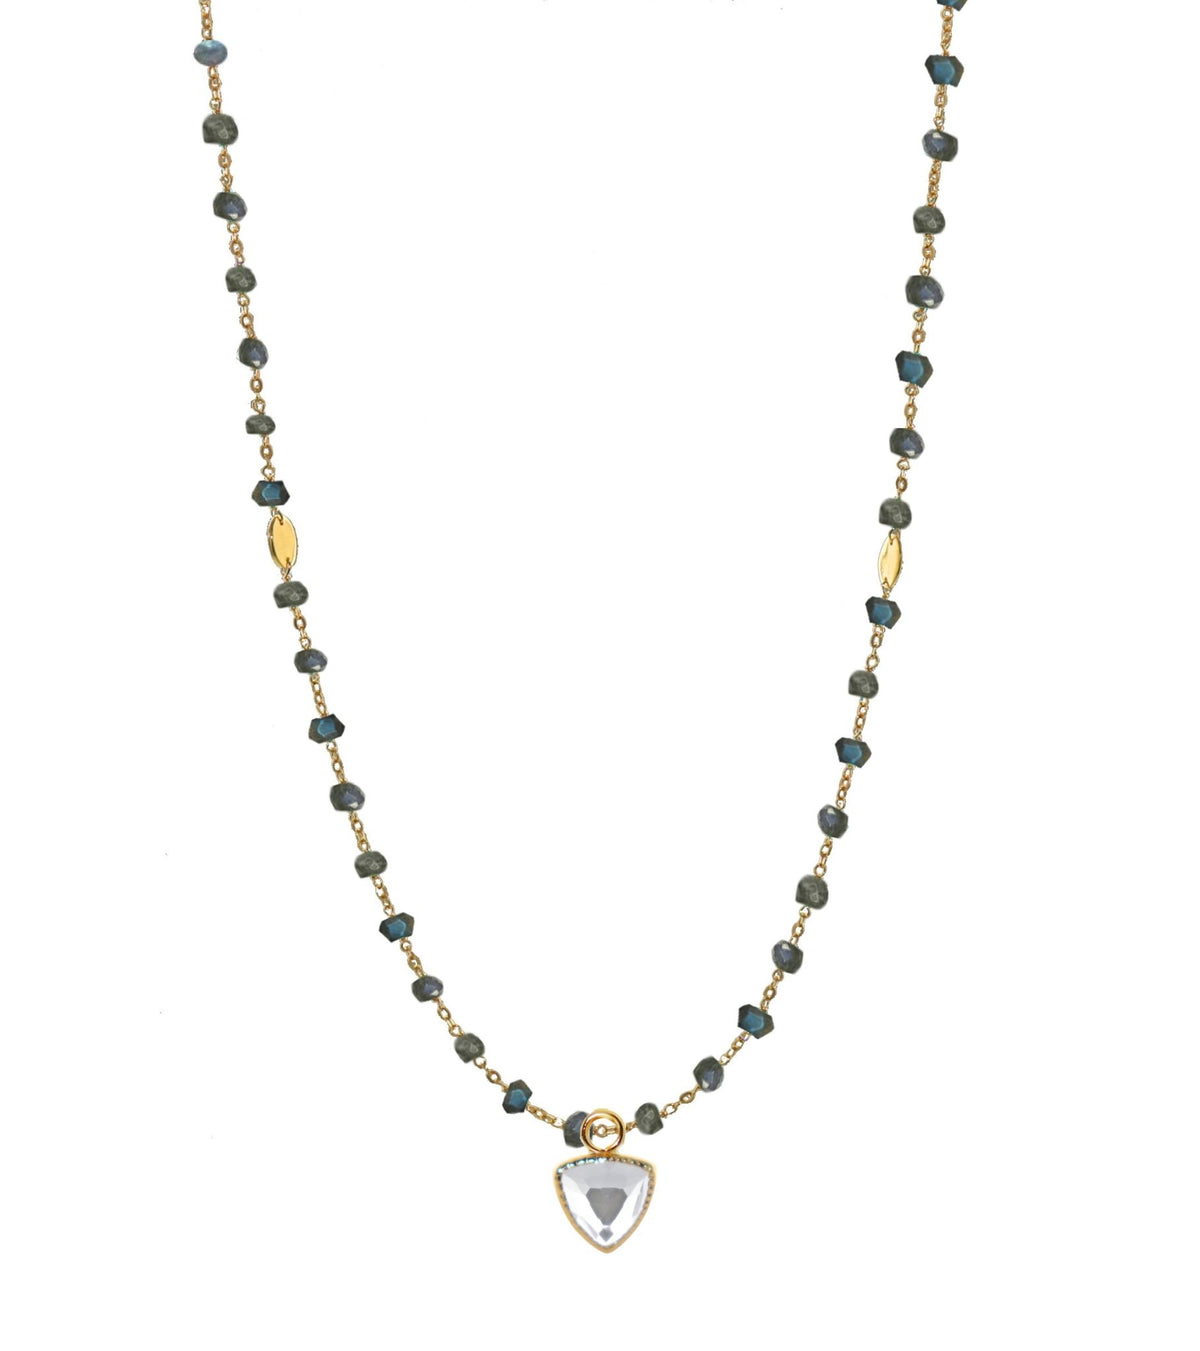 "ICONIC SHORT BEADED NECKLACE - LABRADORITE & GOLD 16-20"" - SO PRETTY CARA COTTER"